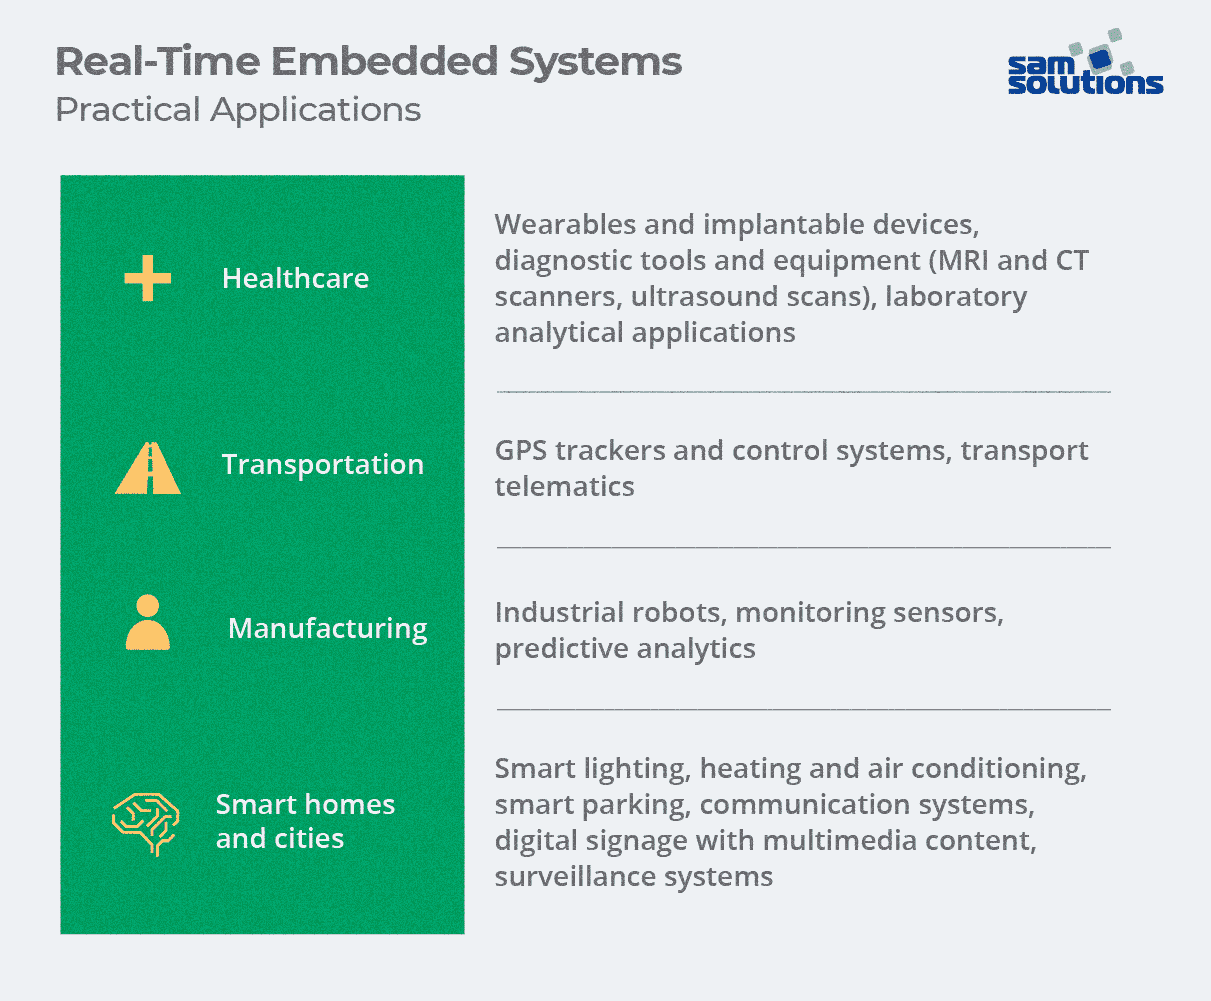 Real-time-embedded-system-use-cases